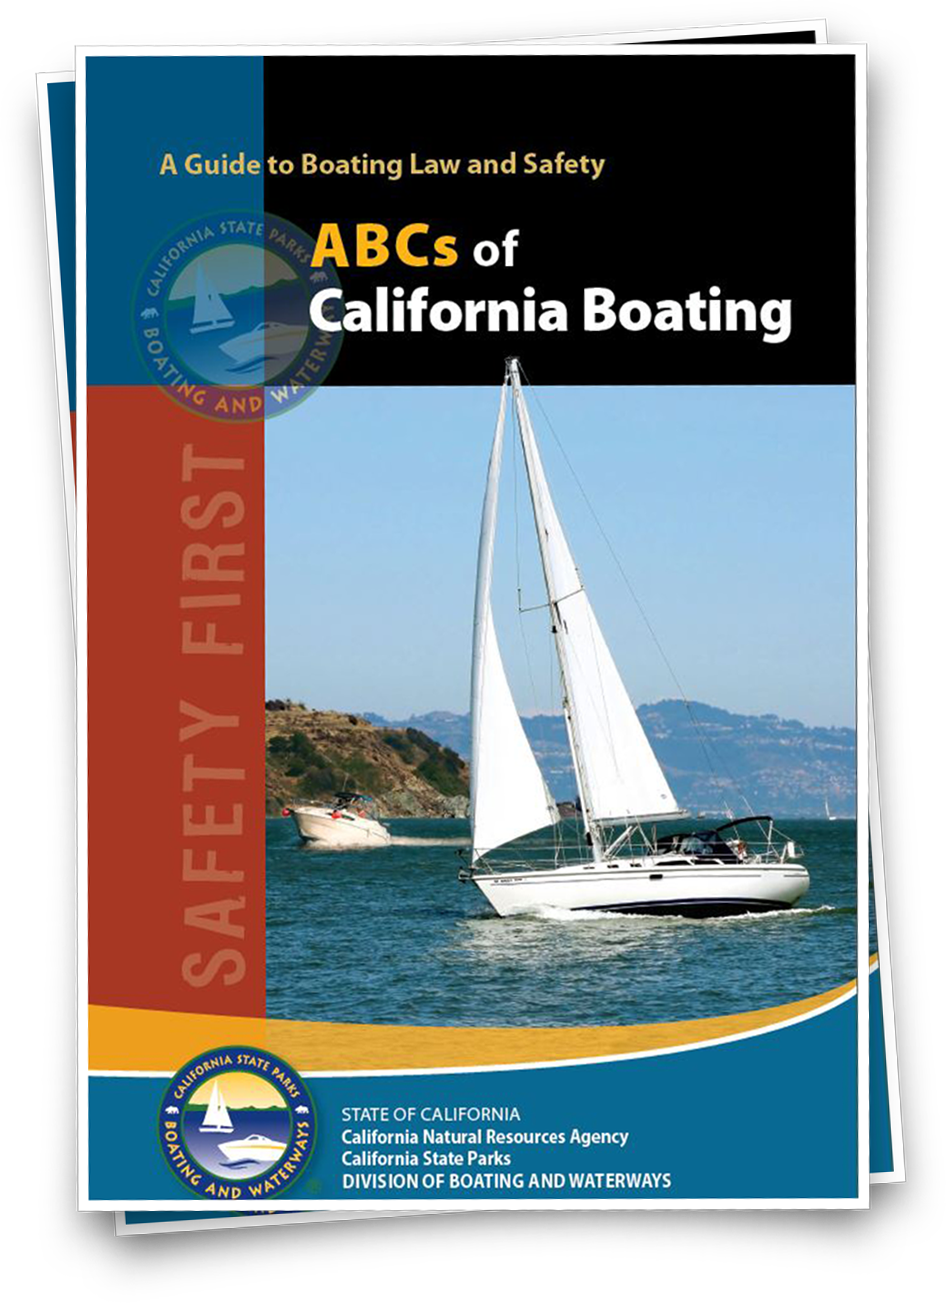 ABC's of California Boating